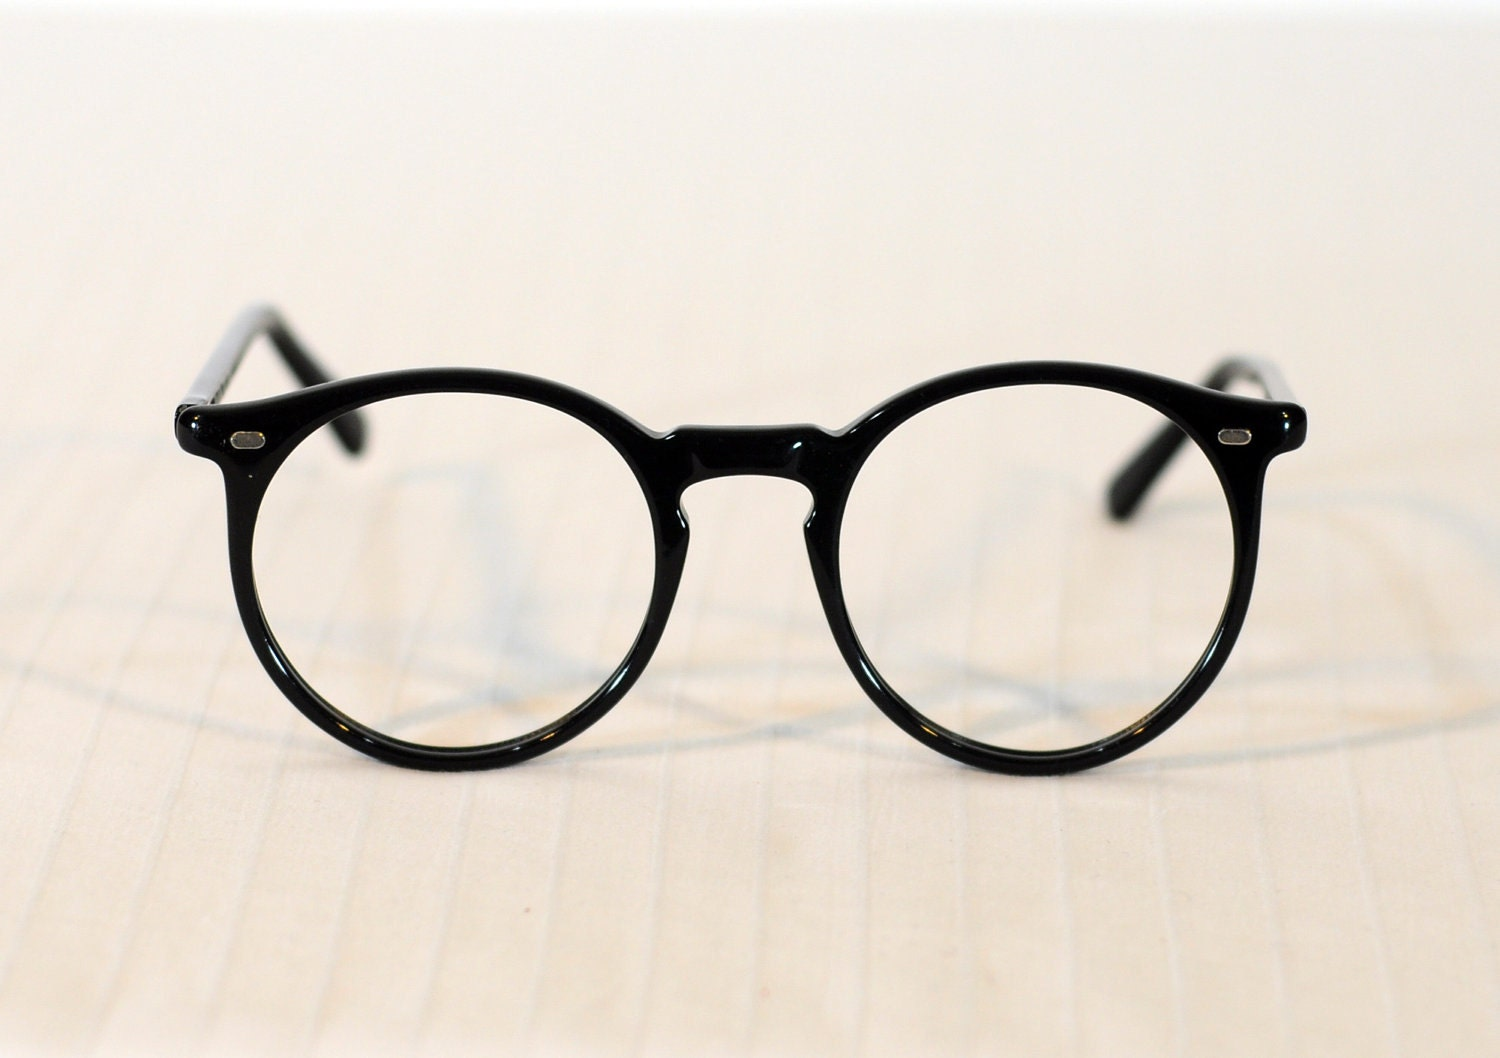 60s eyeglasses frames oversized black by